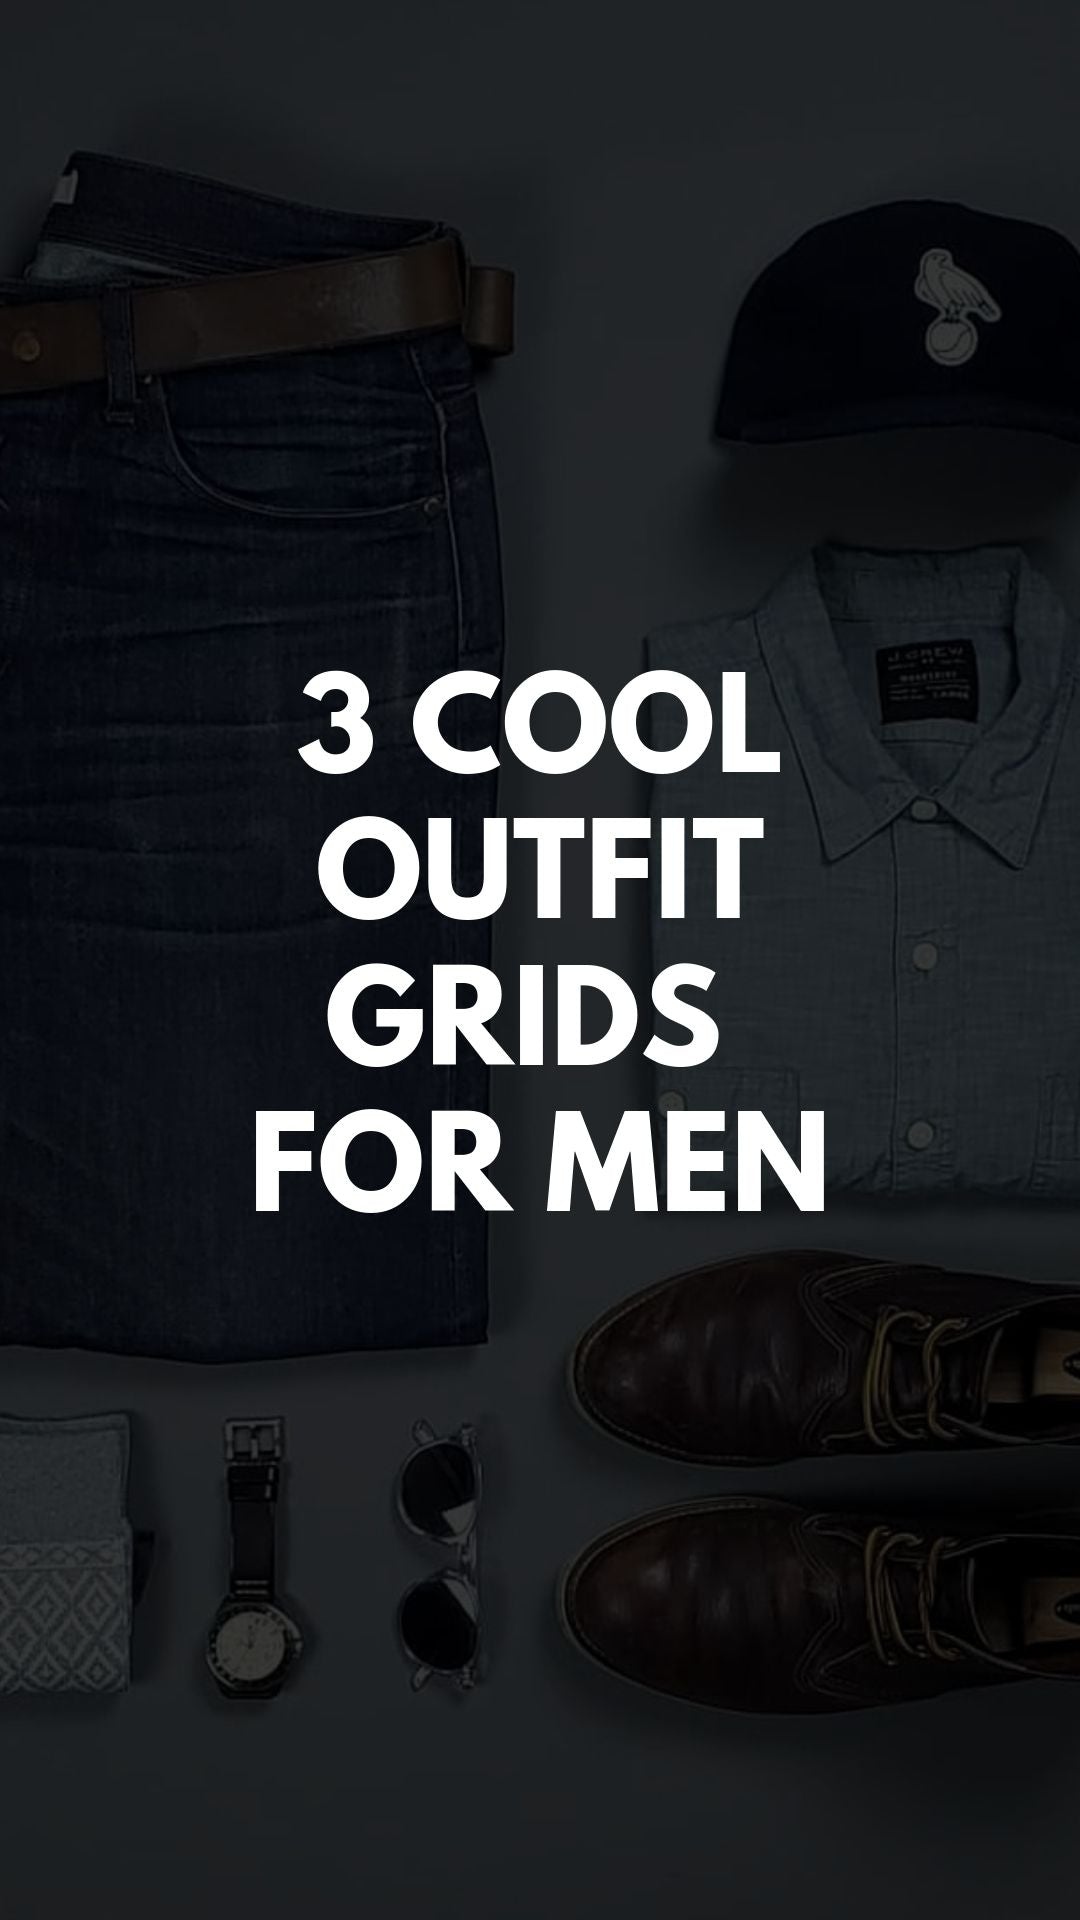 3 COOL OUTFIT GRIDS   FOR MEN